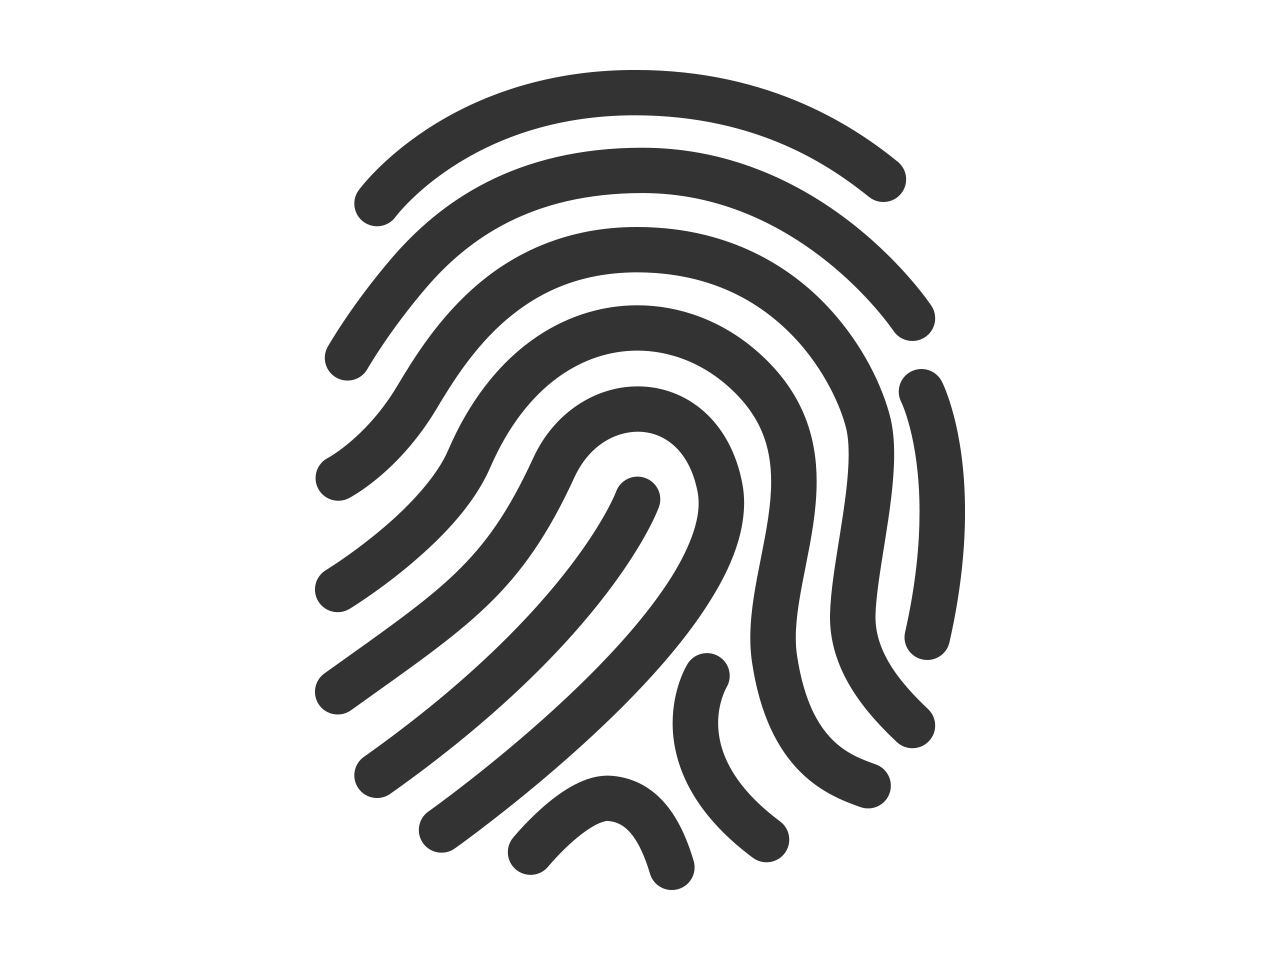 fingerprint transparent gif